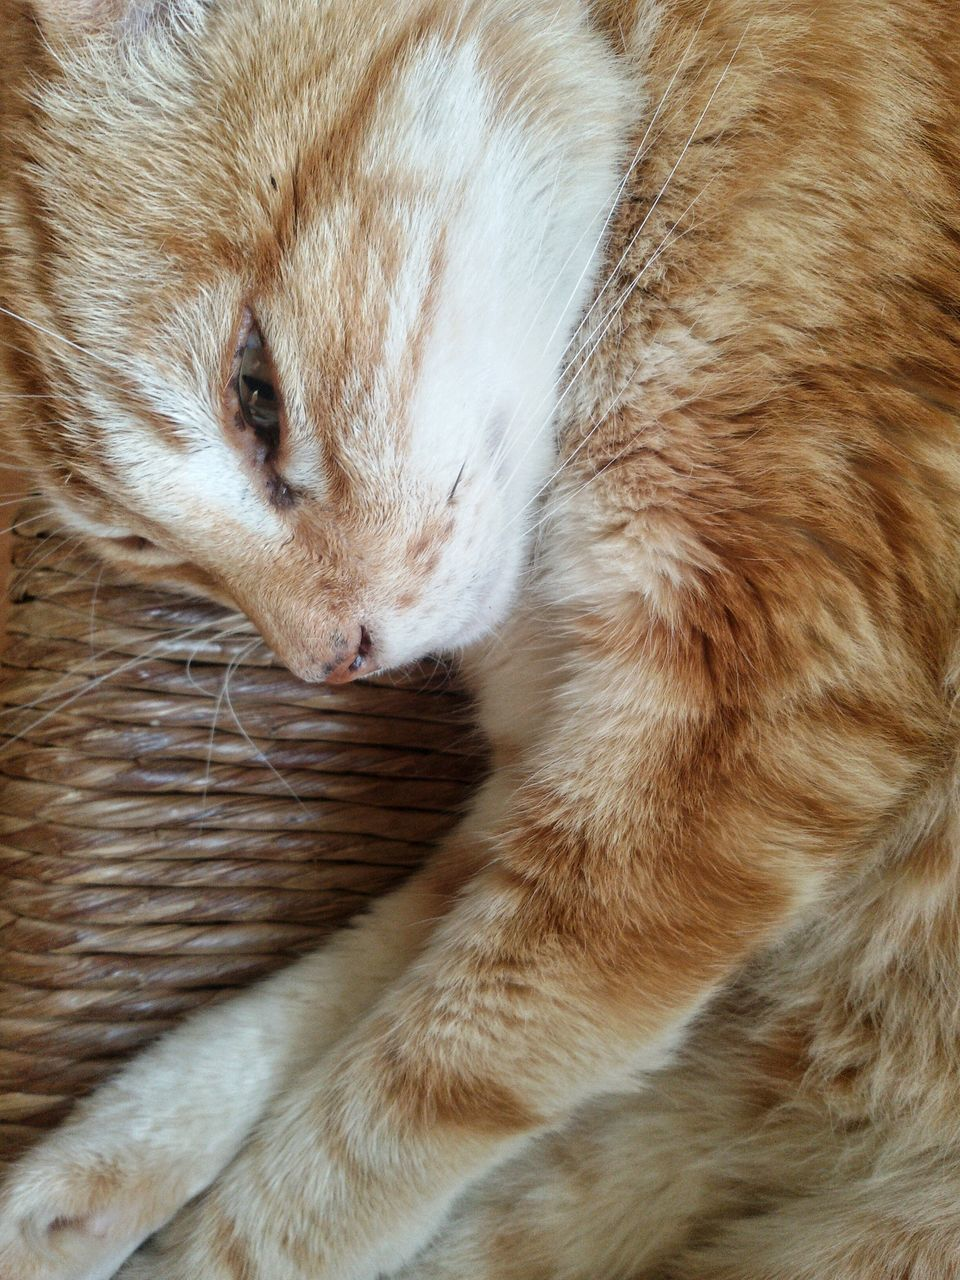 domestic cat, one animal, pets, animal themes, feline, domestic animals, mammal, cat, whisker, indoors, no people, close-up, ginger cat, day, nature